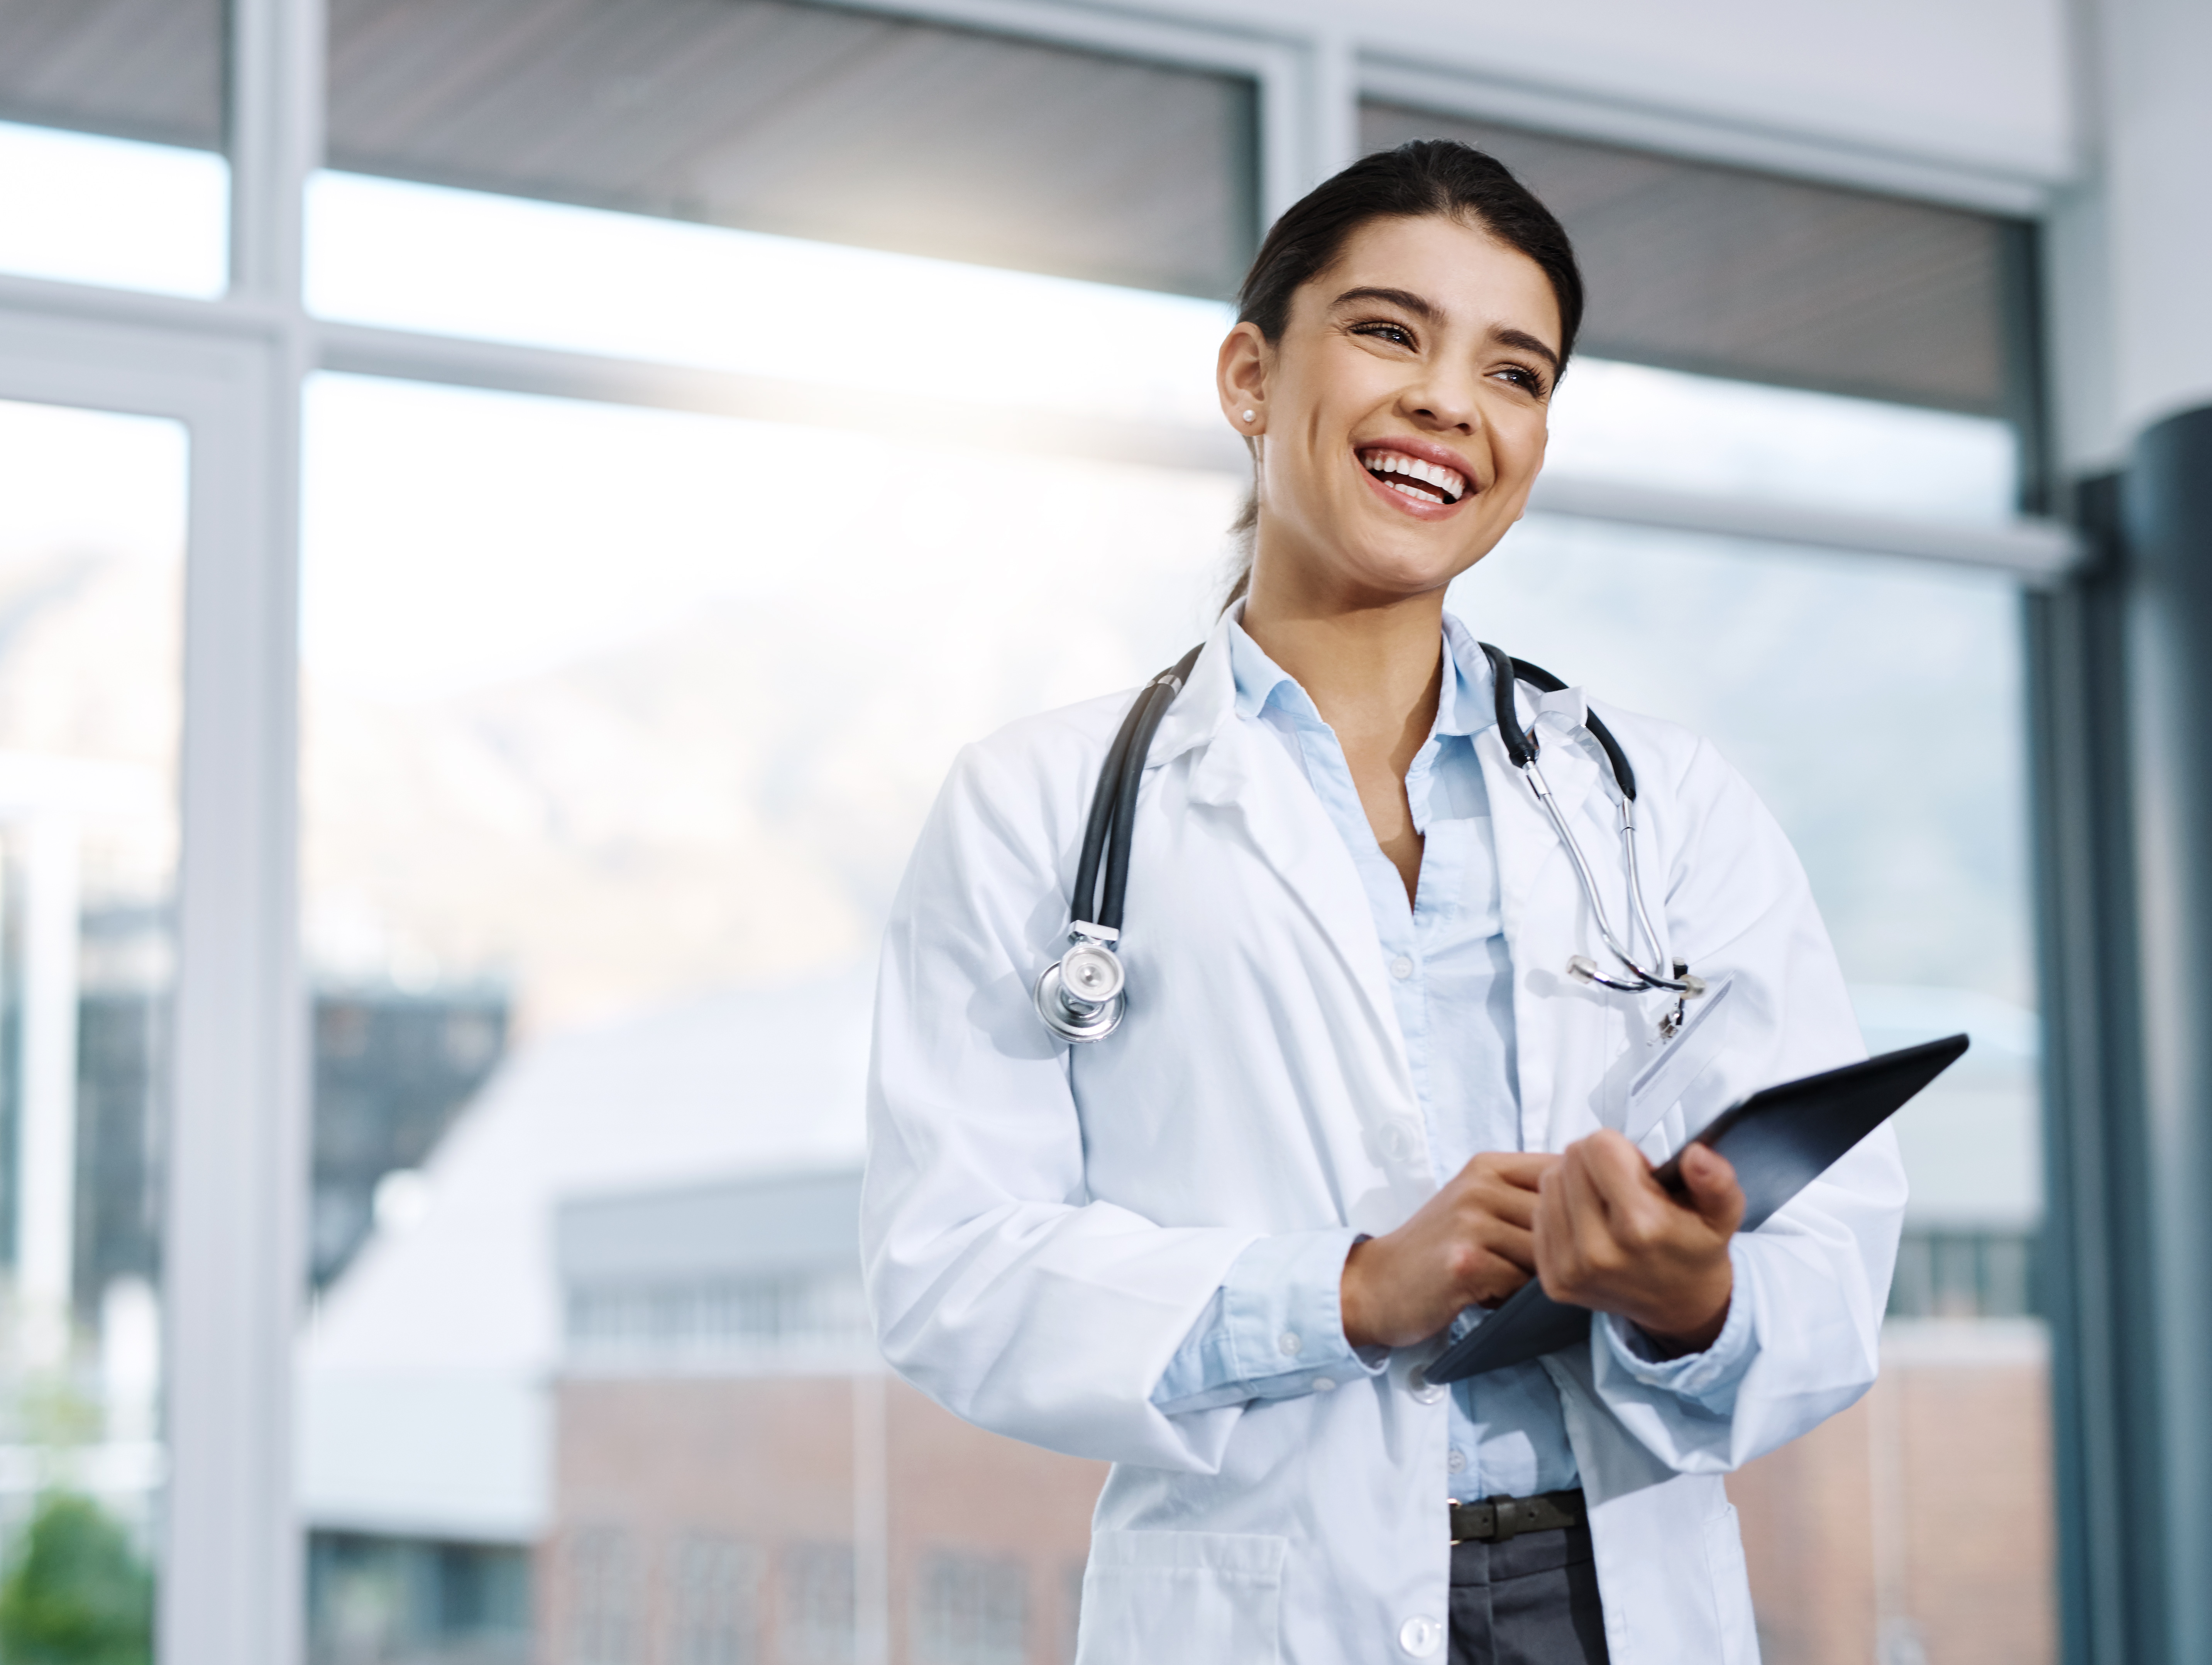 Smiling female doctor with tablet ready to meet with patient